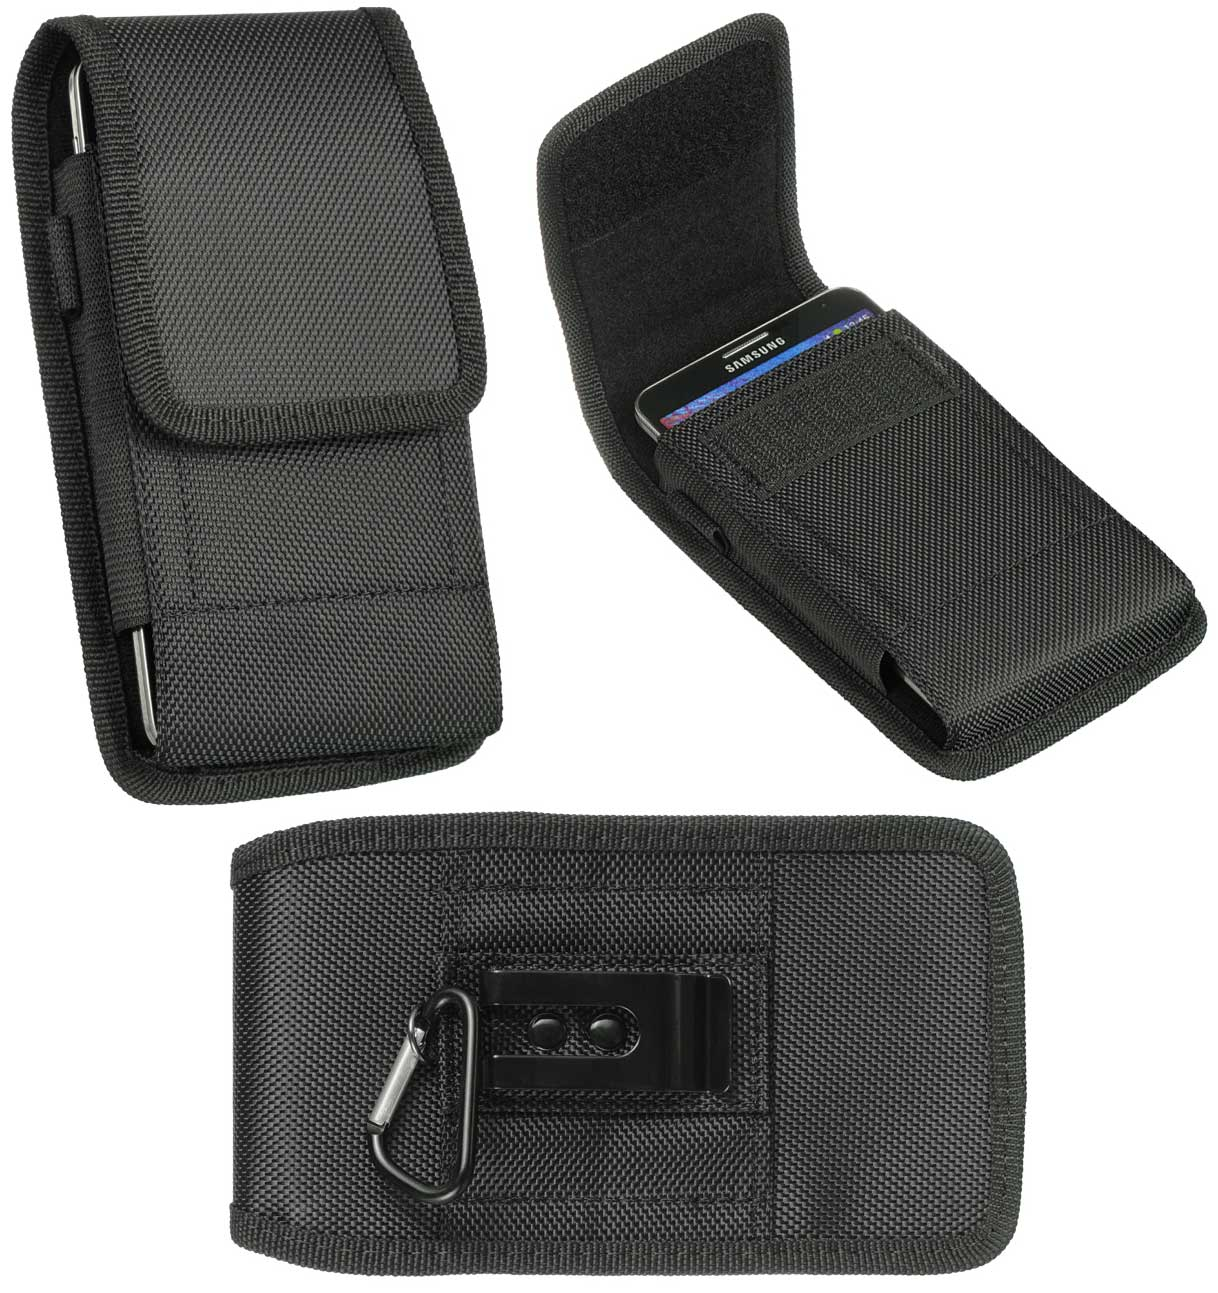 Samsung Galaxy A50 Neoprene Nylon Case Pouch Clip Hook Black